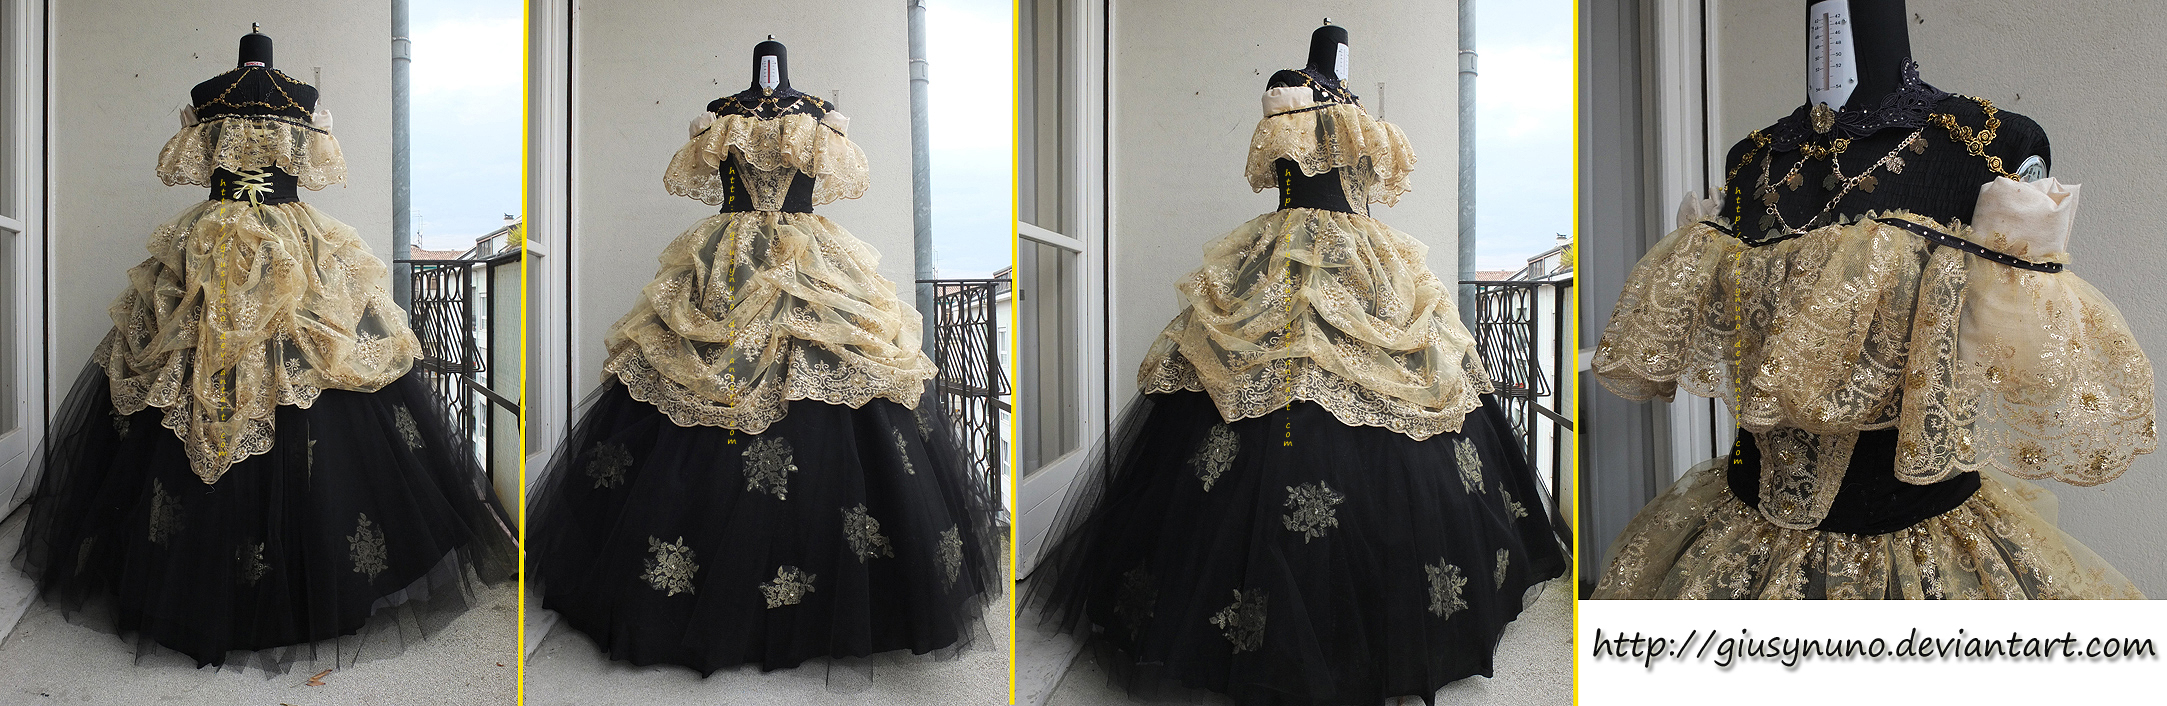 Original Mid \'800 inspired black and gold ballgown by giusynuno on ...